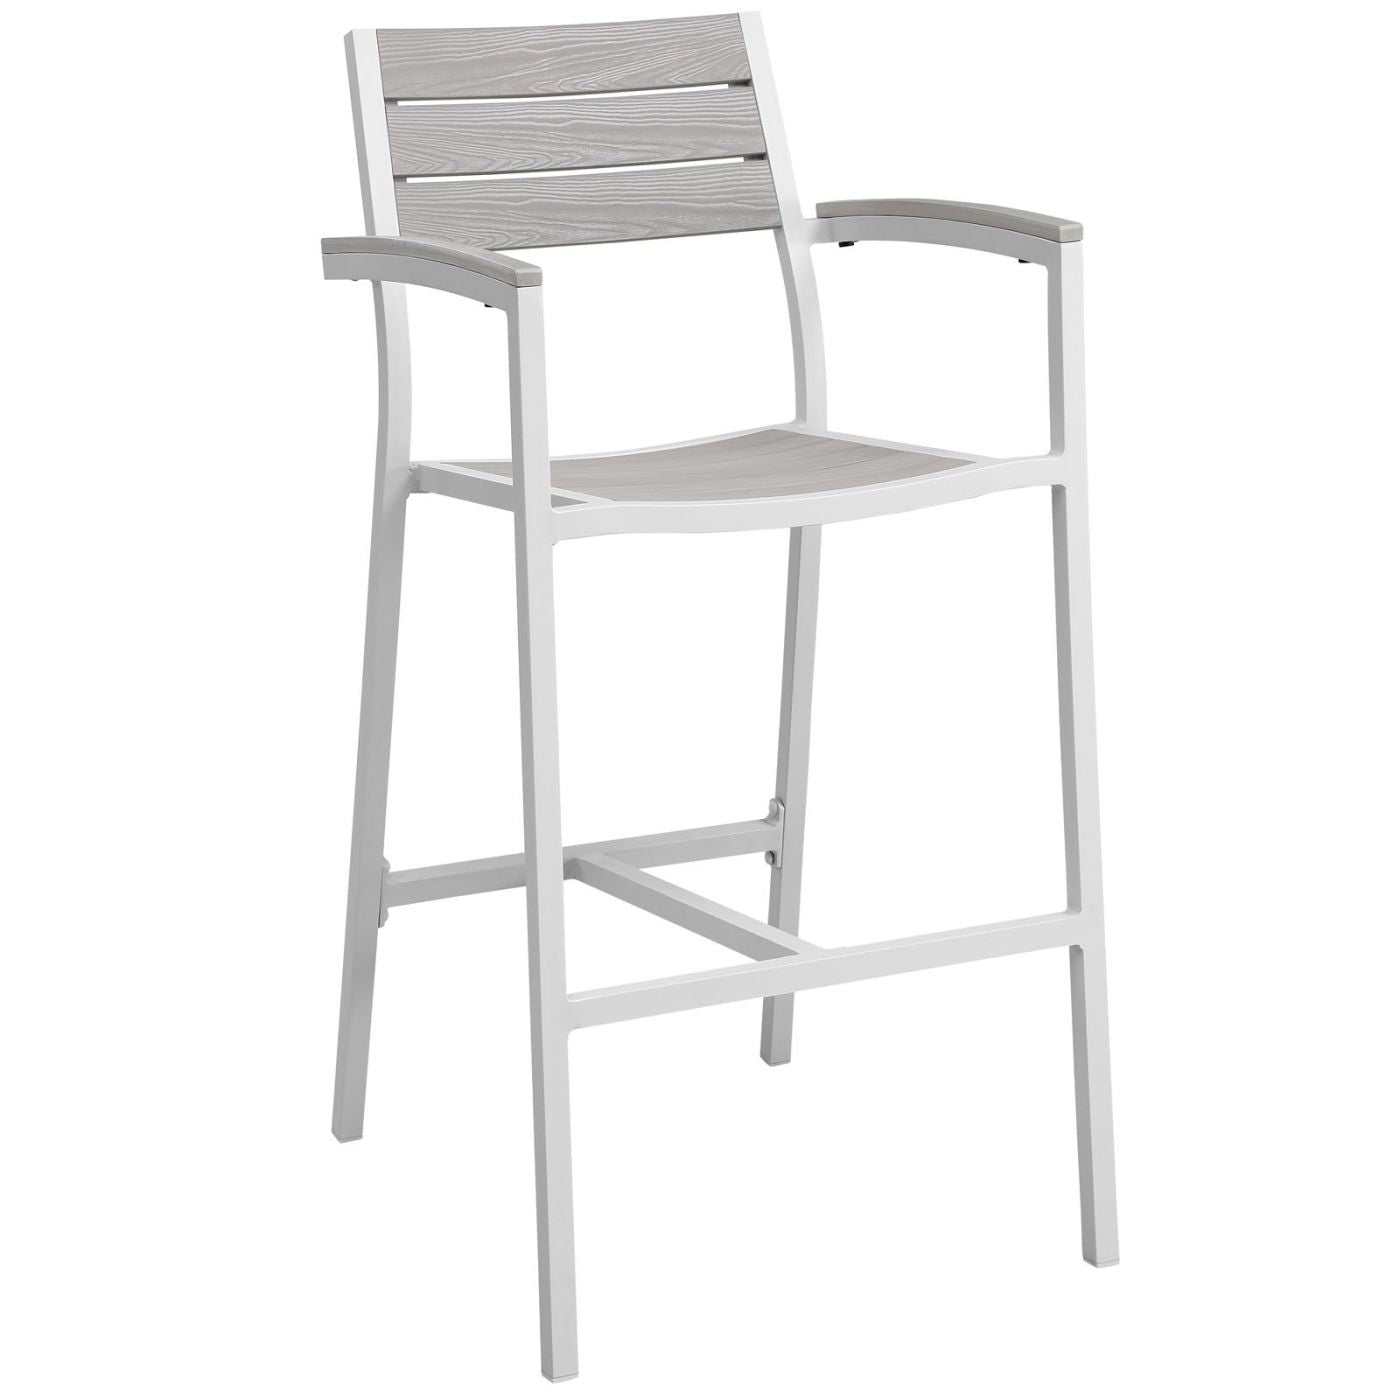 Sensational Modway Outdoor Bar Chairs On Sale Eei 1510 Whi Lgr Maine Outdoor Patio Bar Stool Only Only 224 55 At Contemporary Furniture Warehouse Andrewgaddart Wooden Chair Designs For Living Room Andrewgaddartcom